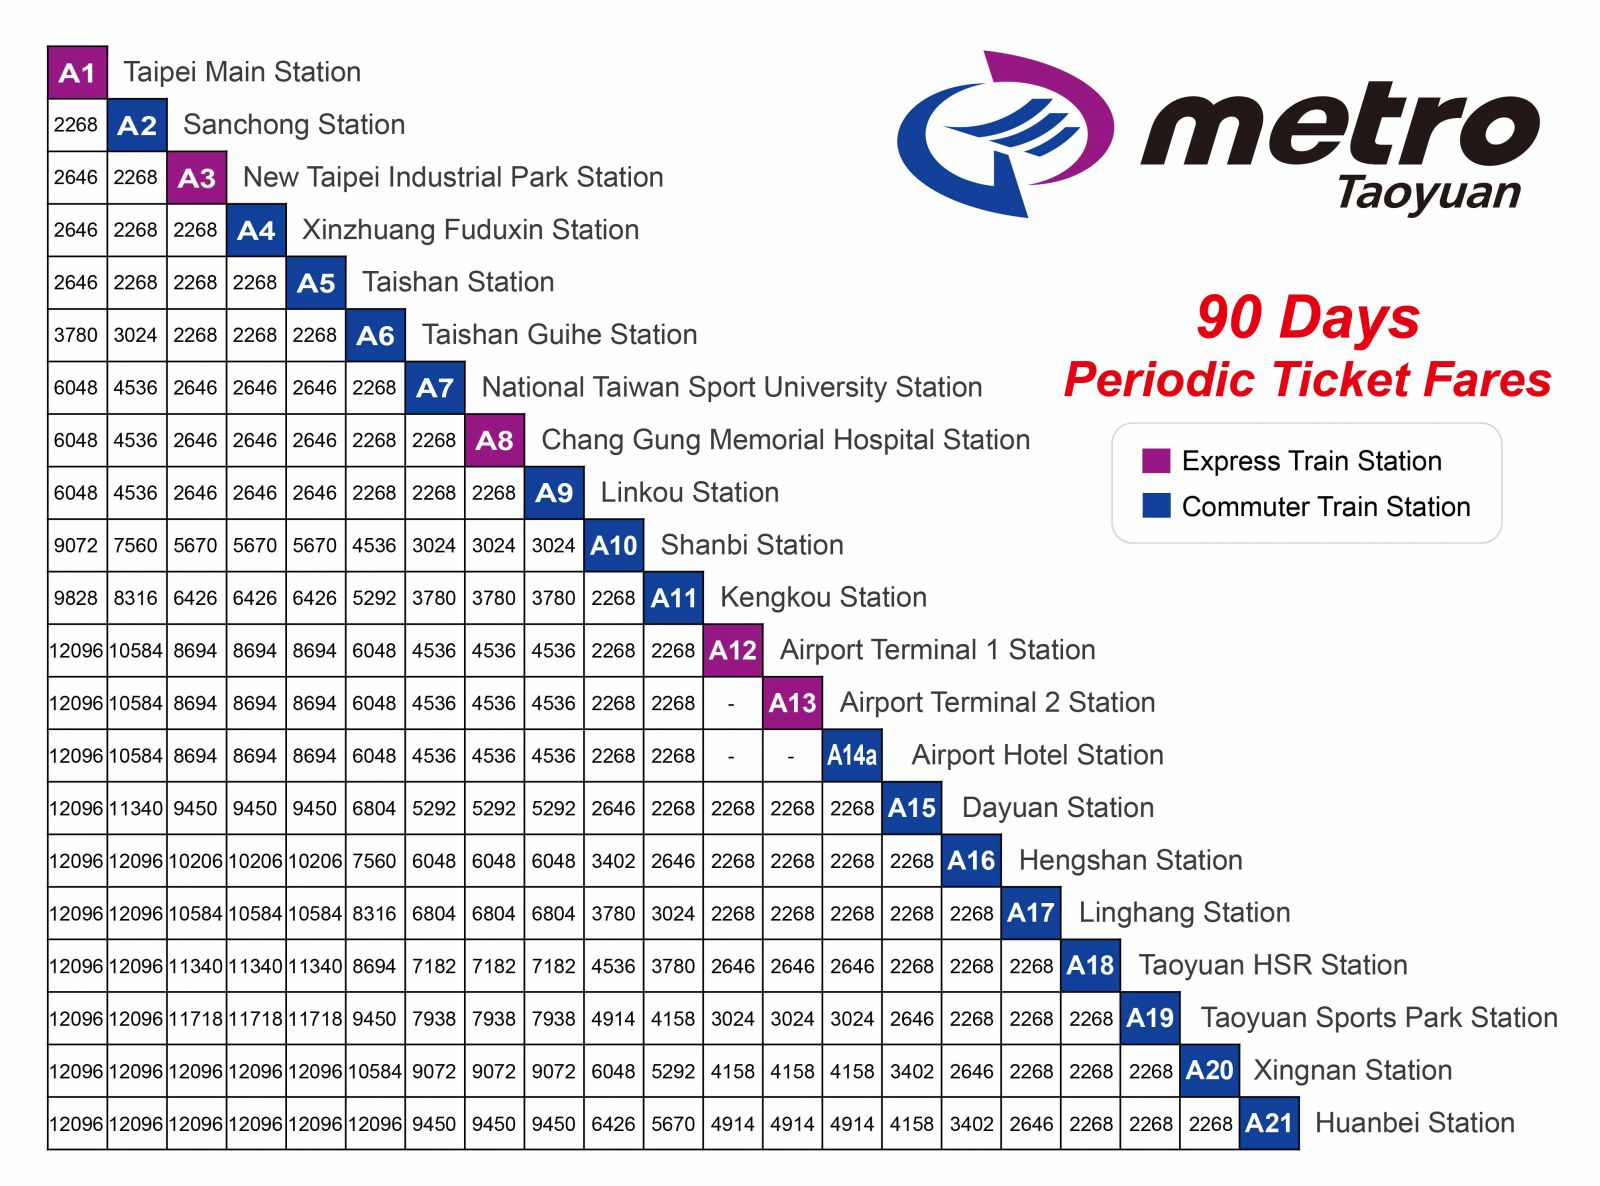 90 day periodic ticket fares